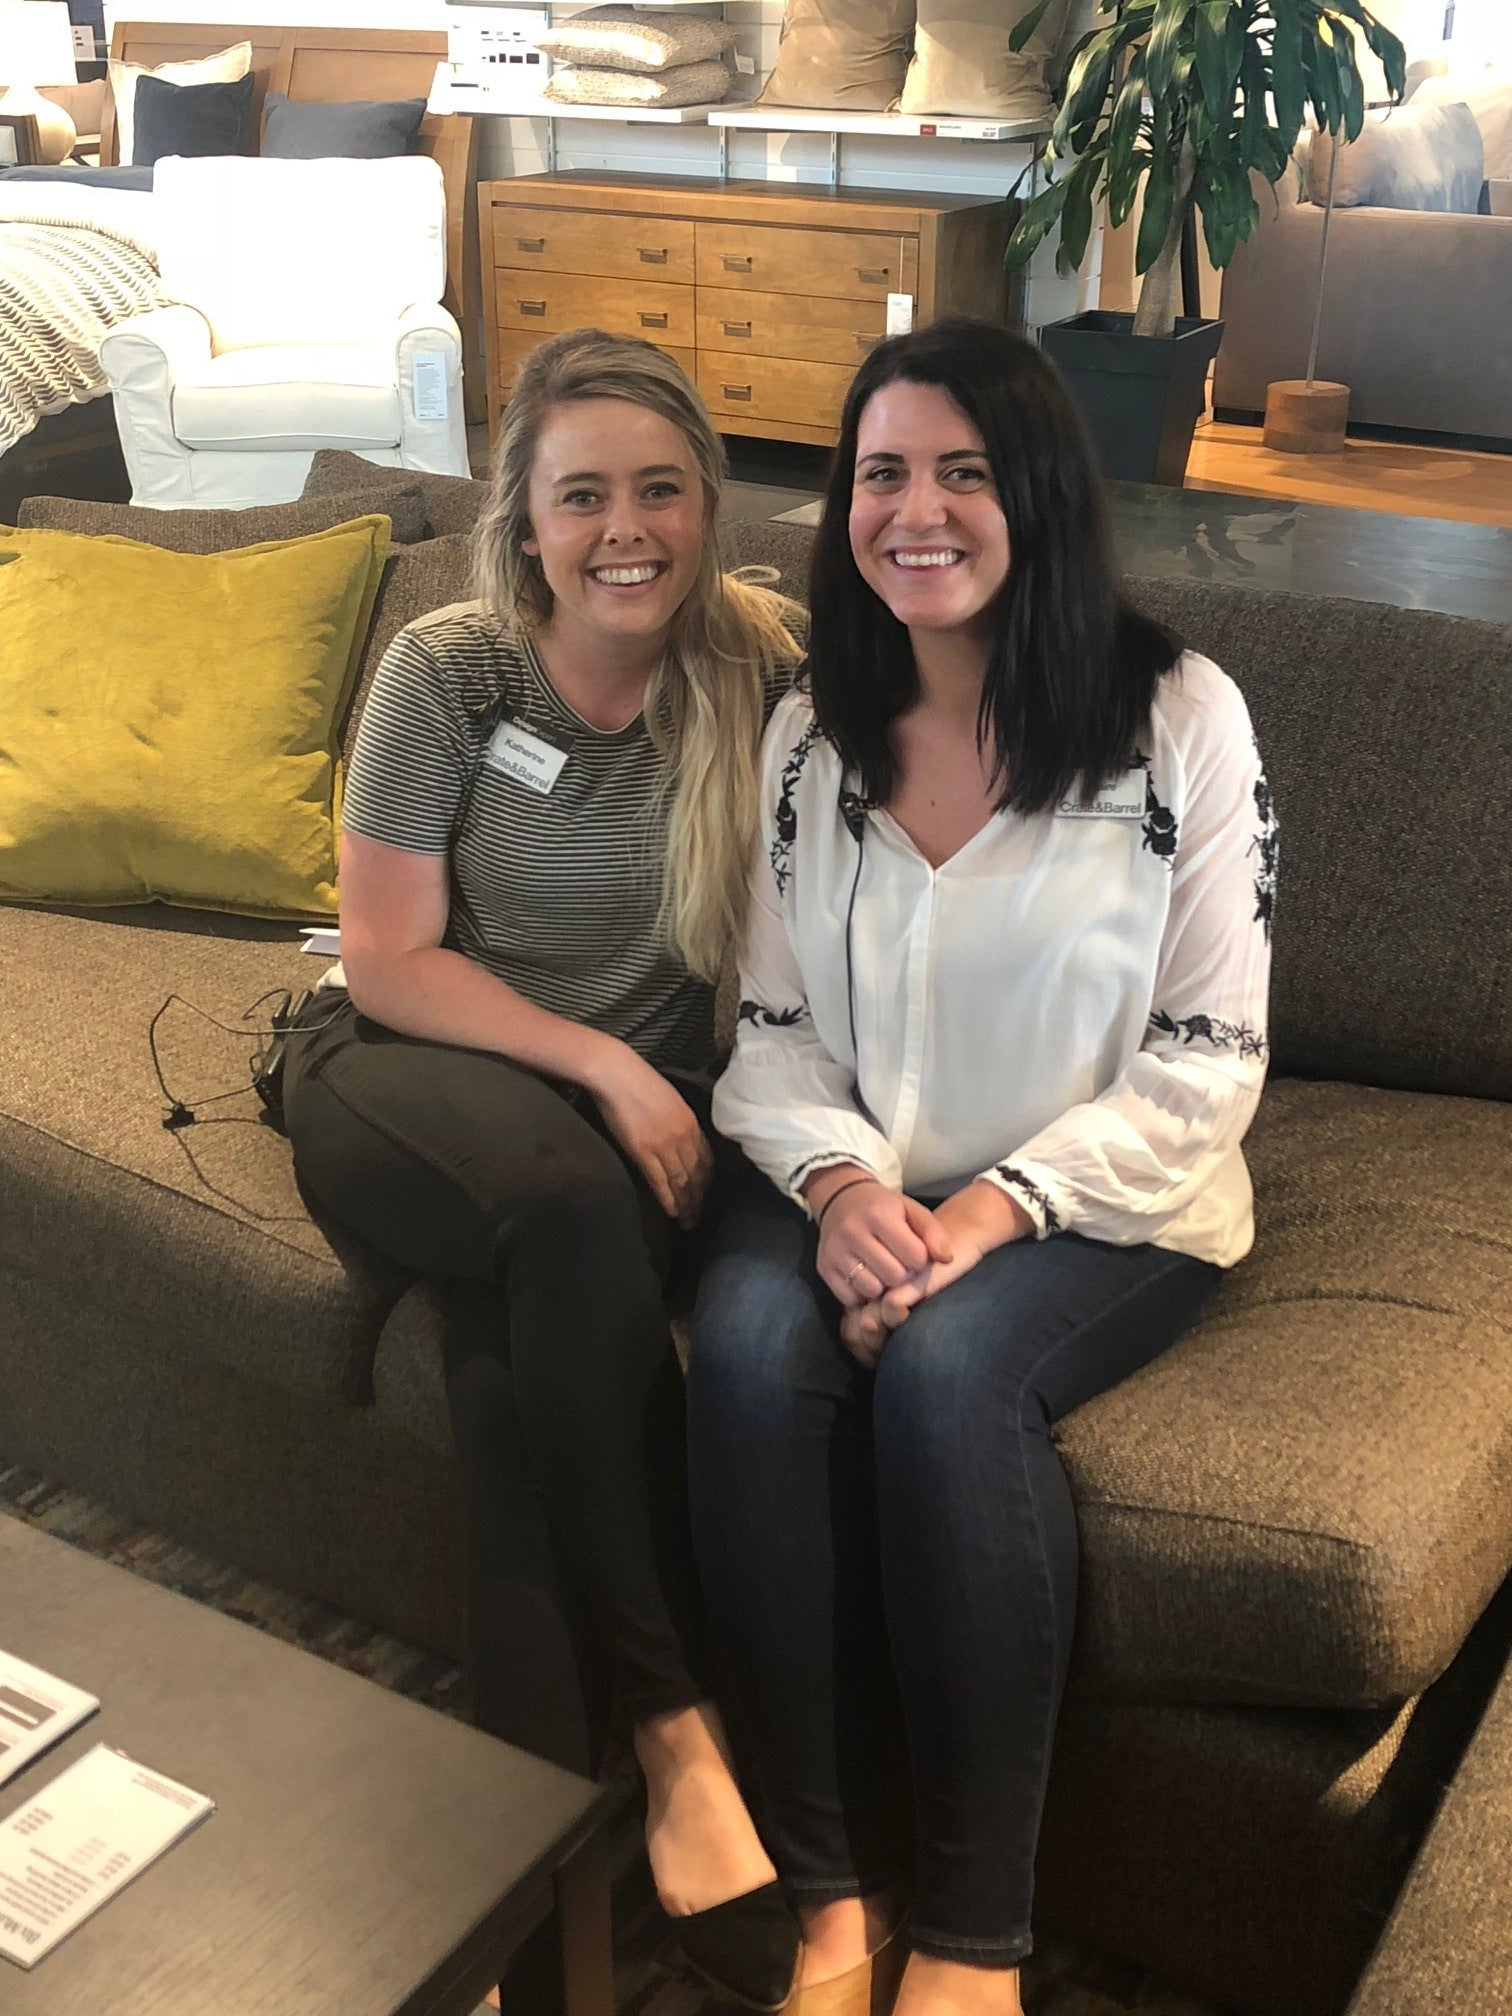 Above:  Our helpful and knowledgeable Crate and Barrel Furniture & Design Experts, Katherine and Claire!